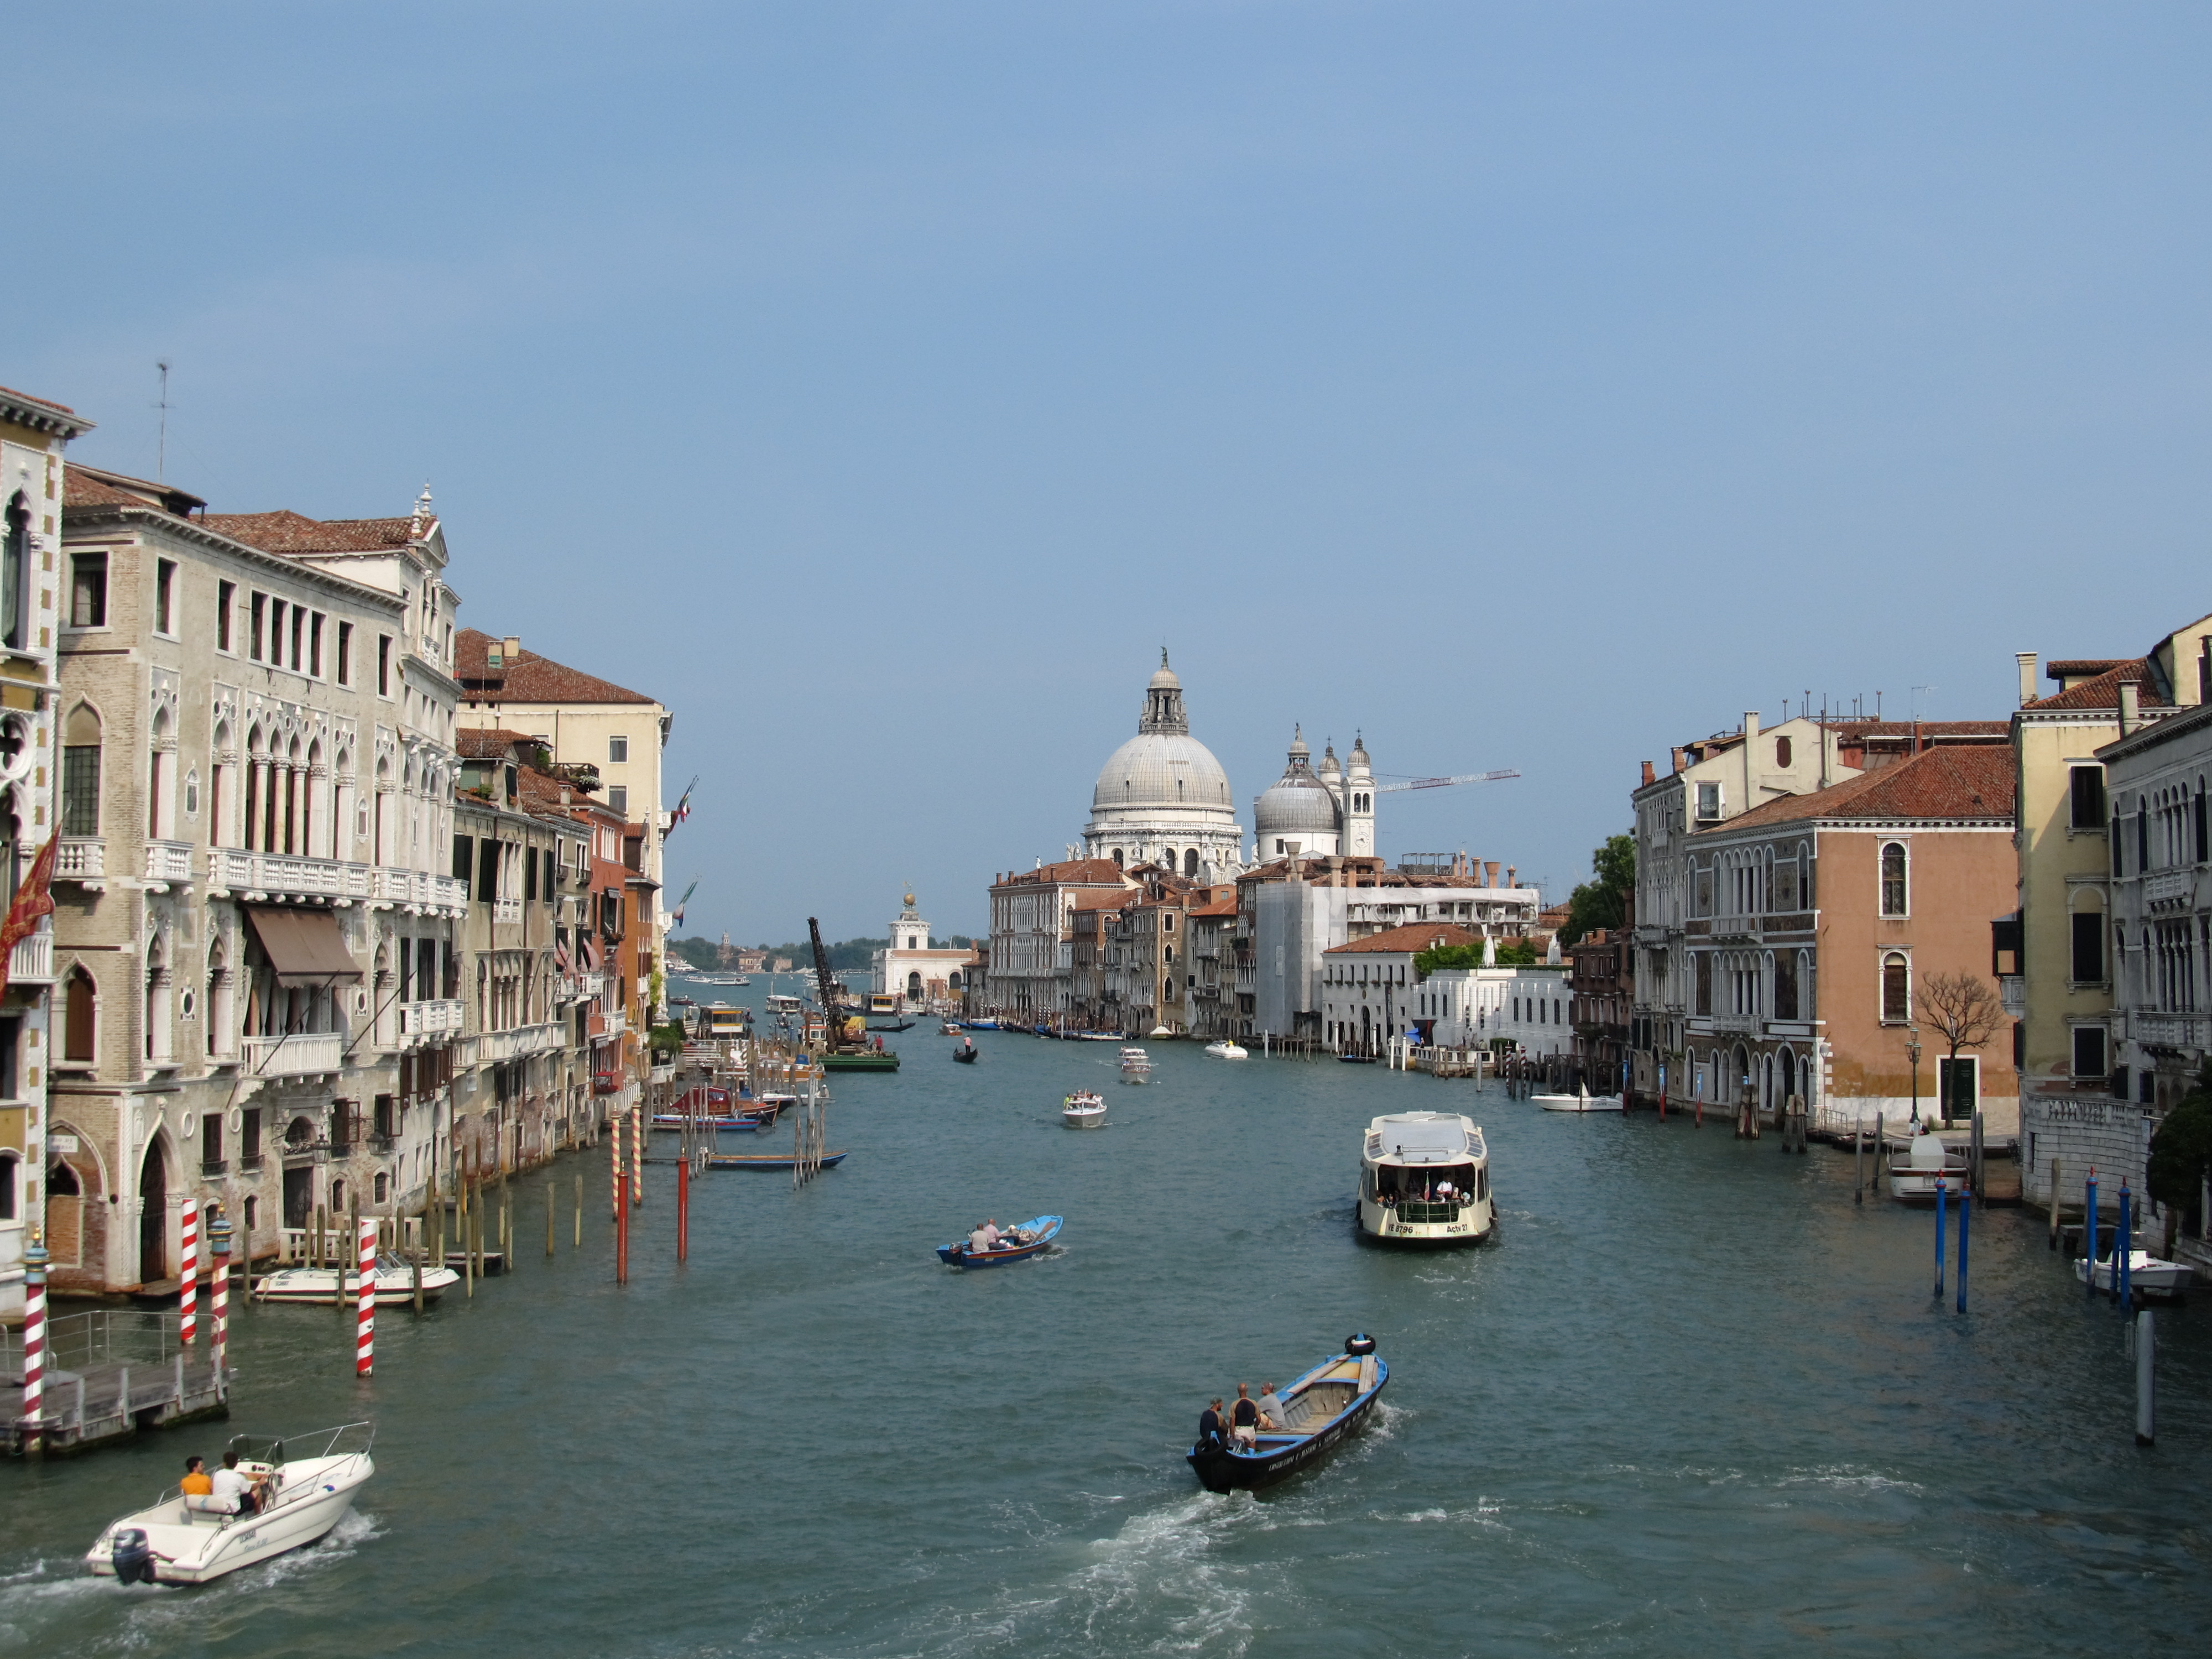 Venice is a favorite among romantics, and unquestionably one of the top tourist attractions in Italy